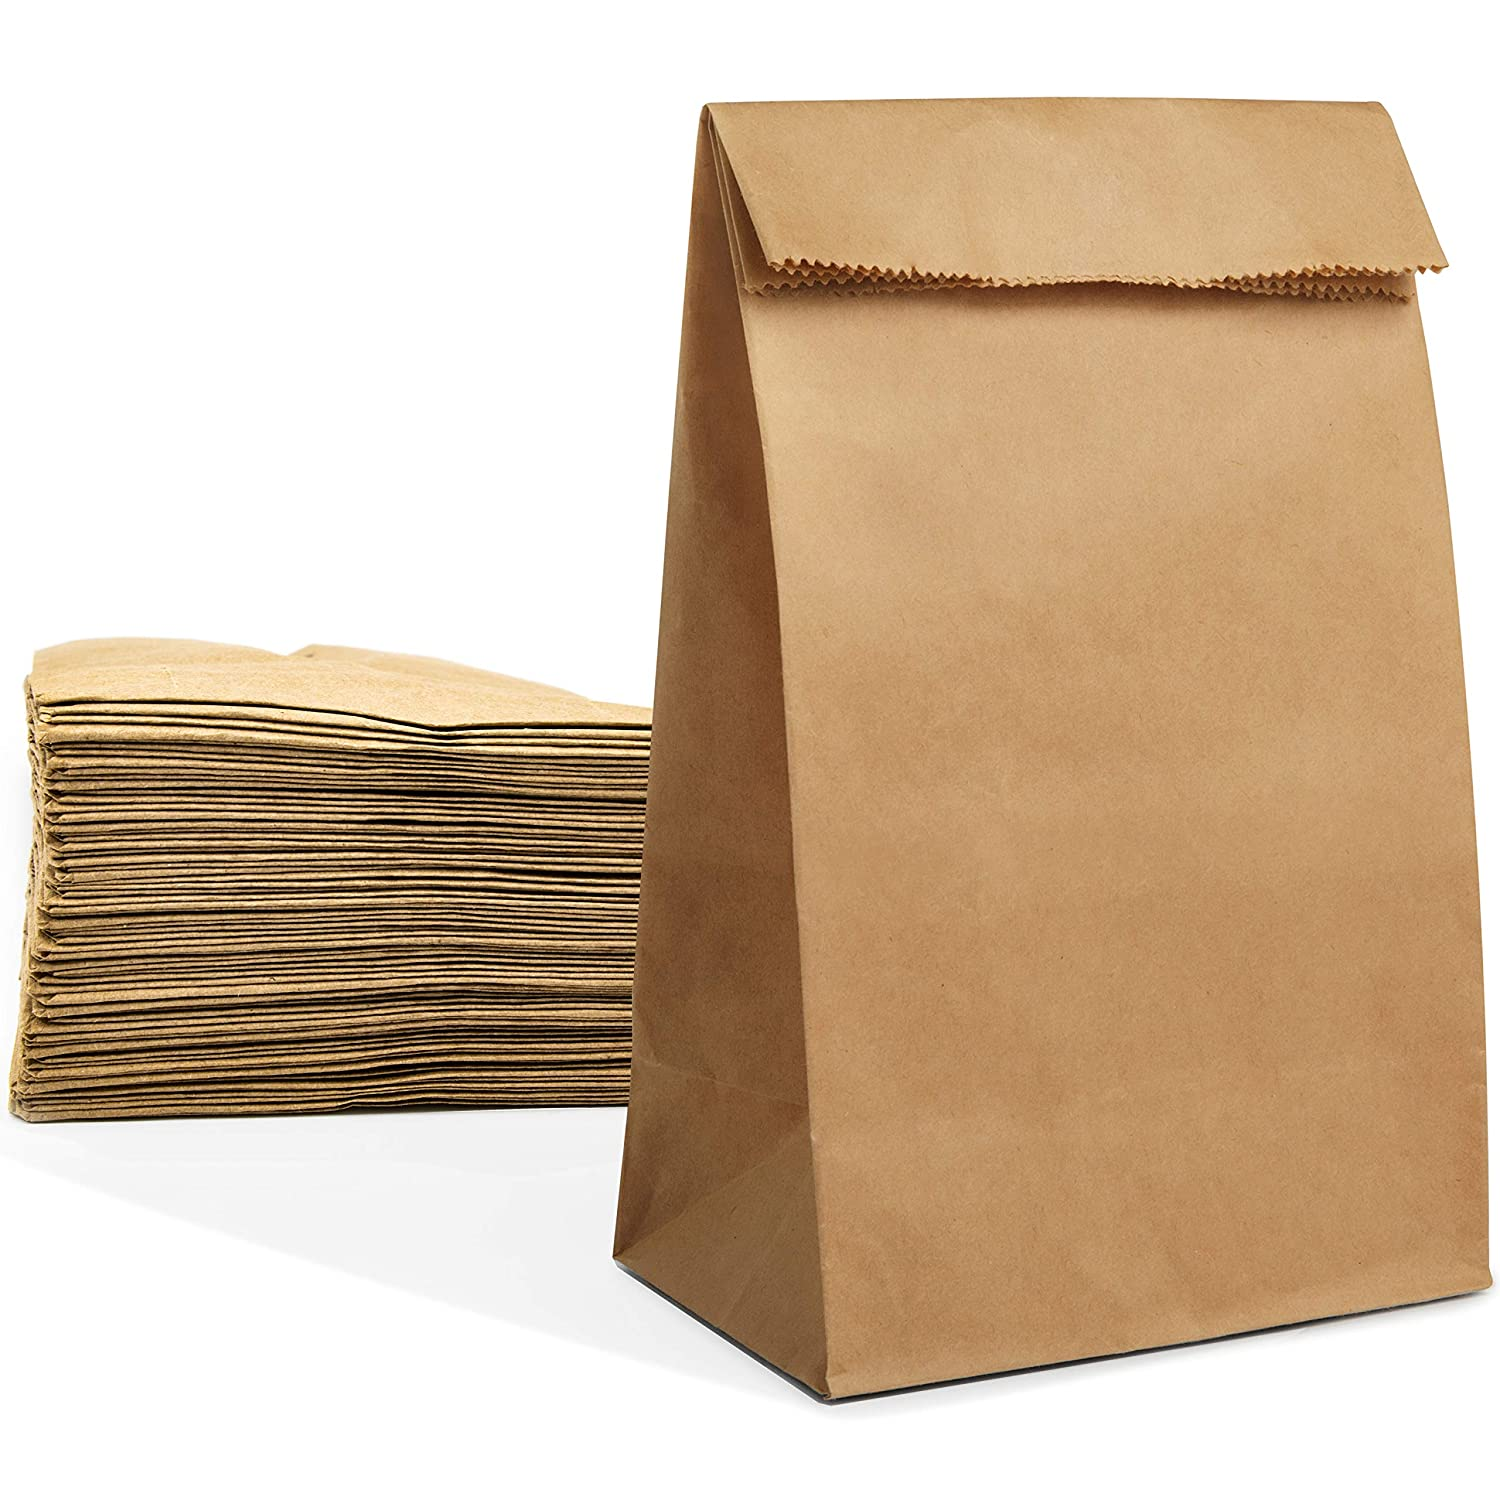 7c34c44a727 Amazon.com  100 Large Paper Grocery Bags